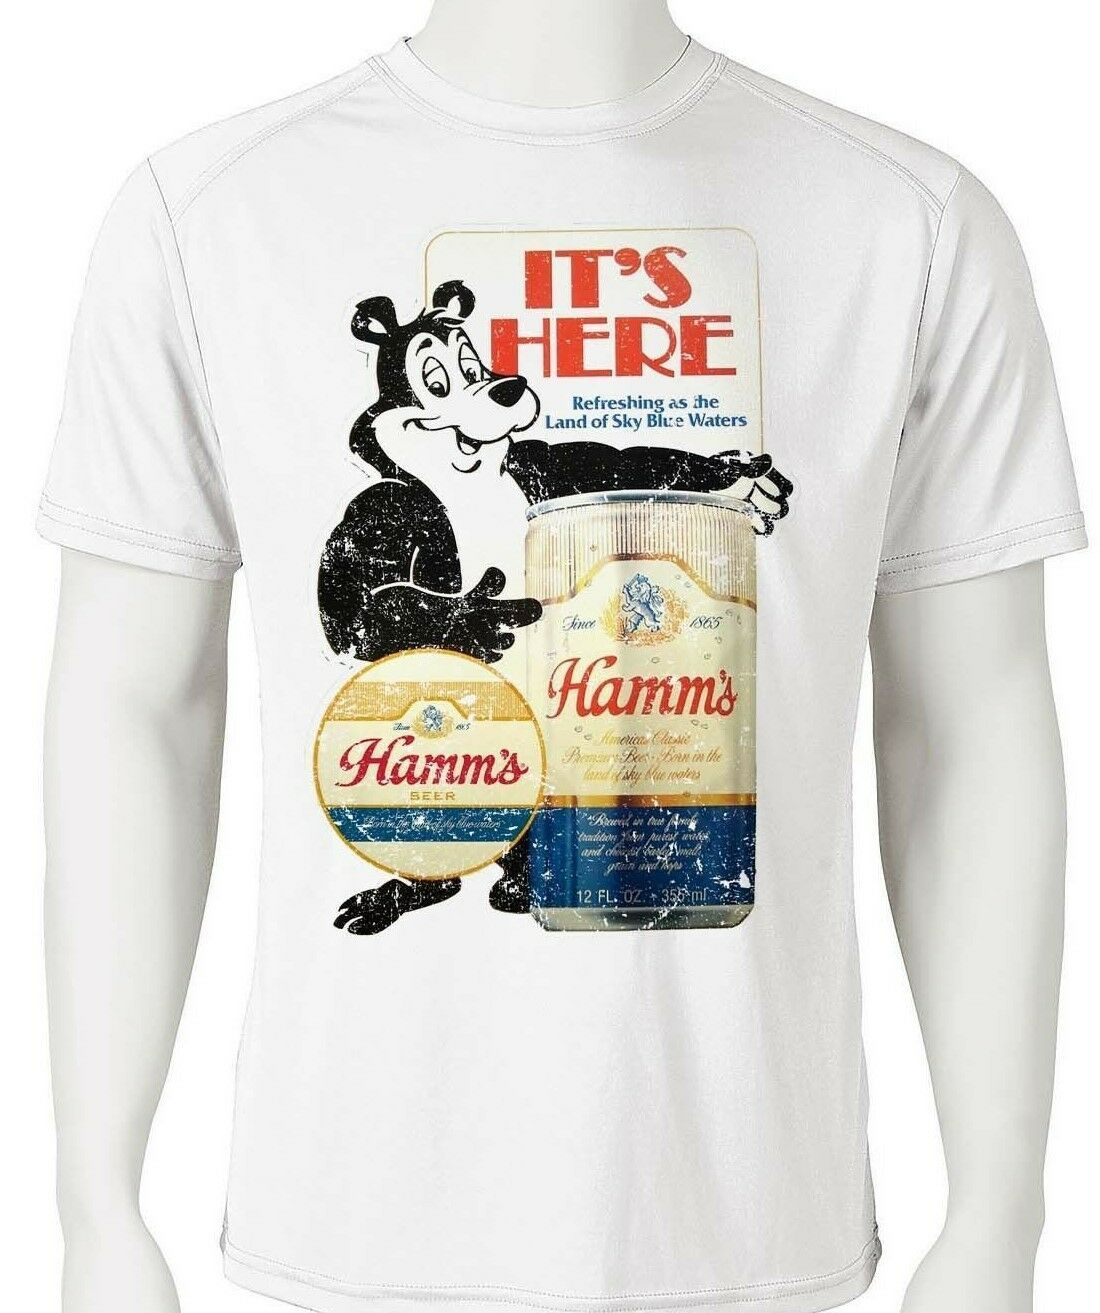 Hamm's Beer Dri Fit graphic Tshirt moisture wicking retro SPF active wear tee